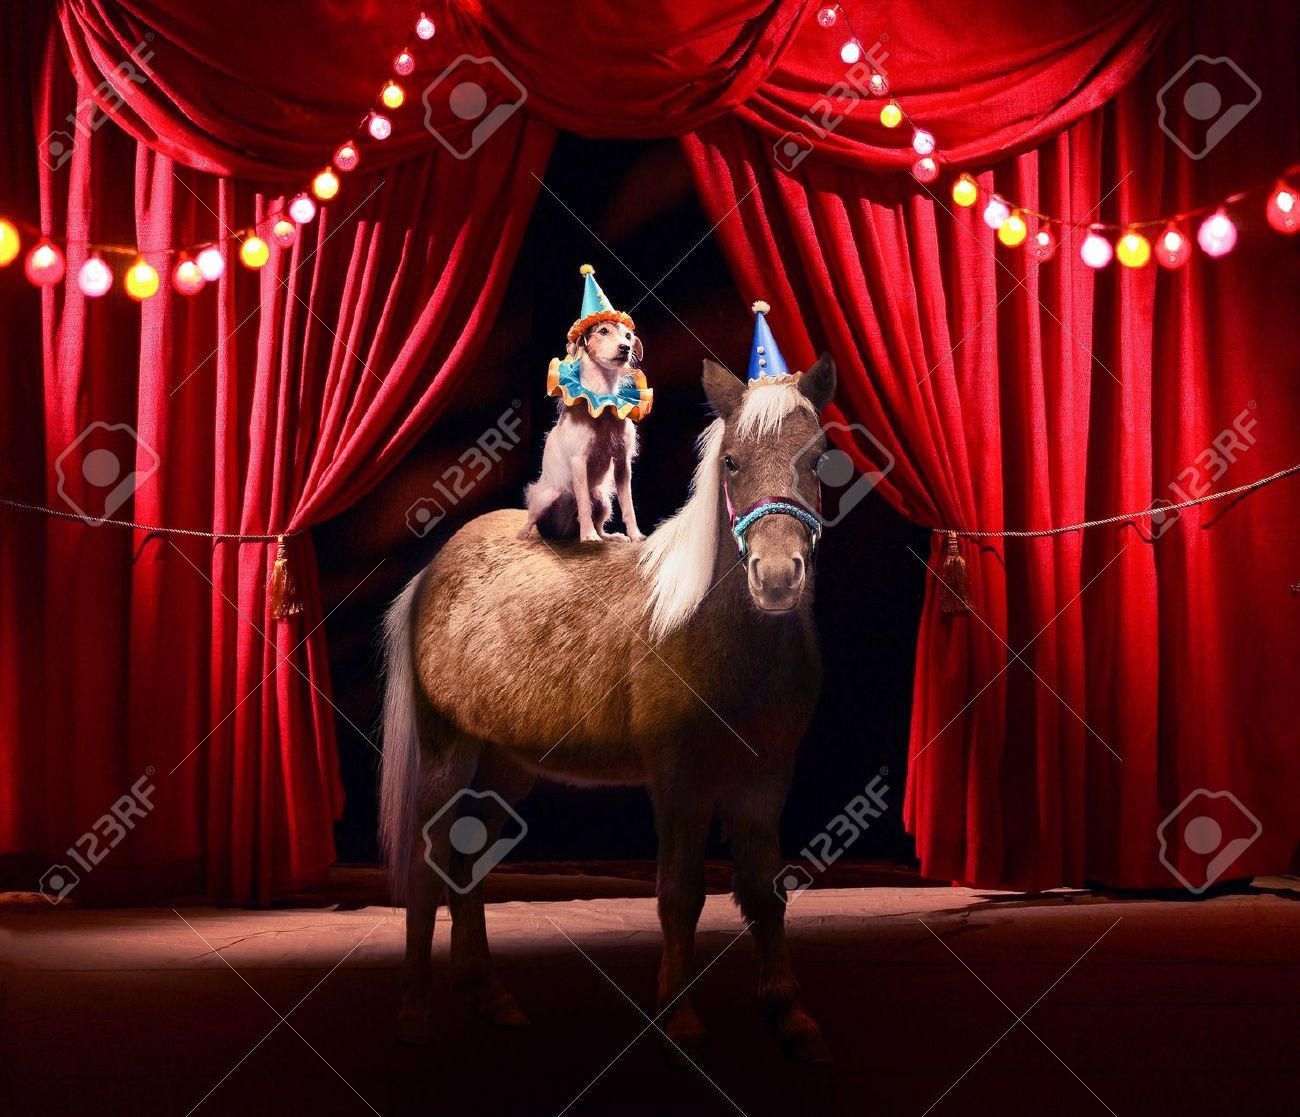 dog and pony show pin up - Google Search | Dog and Pony ...